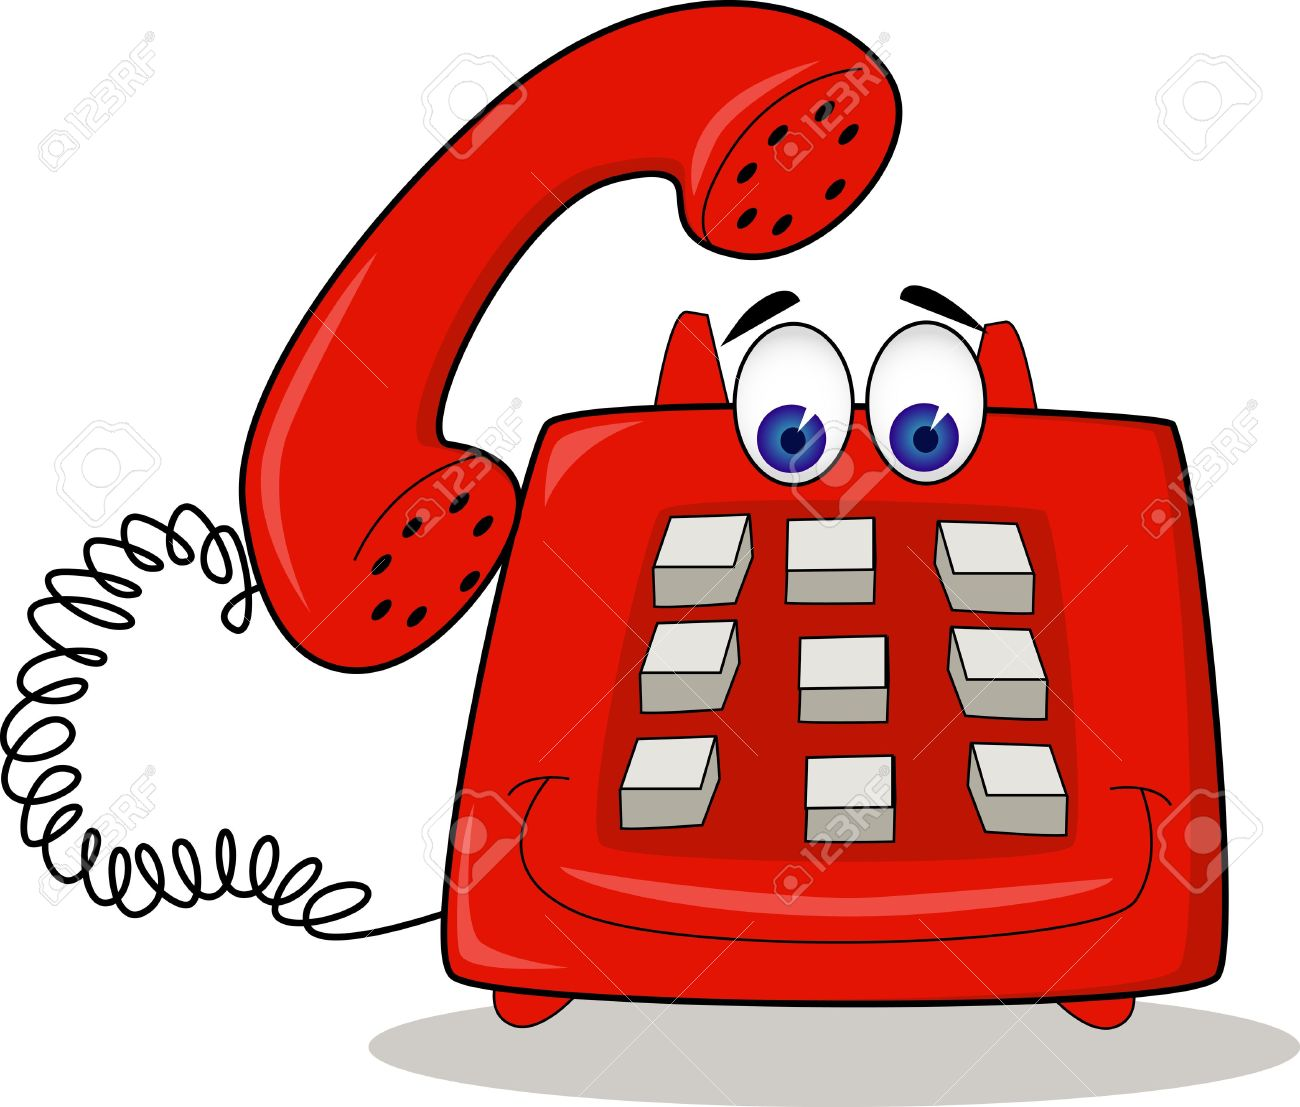 Image result for telephone pictures cartoon